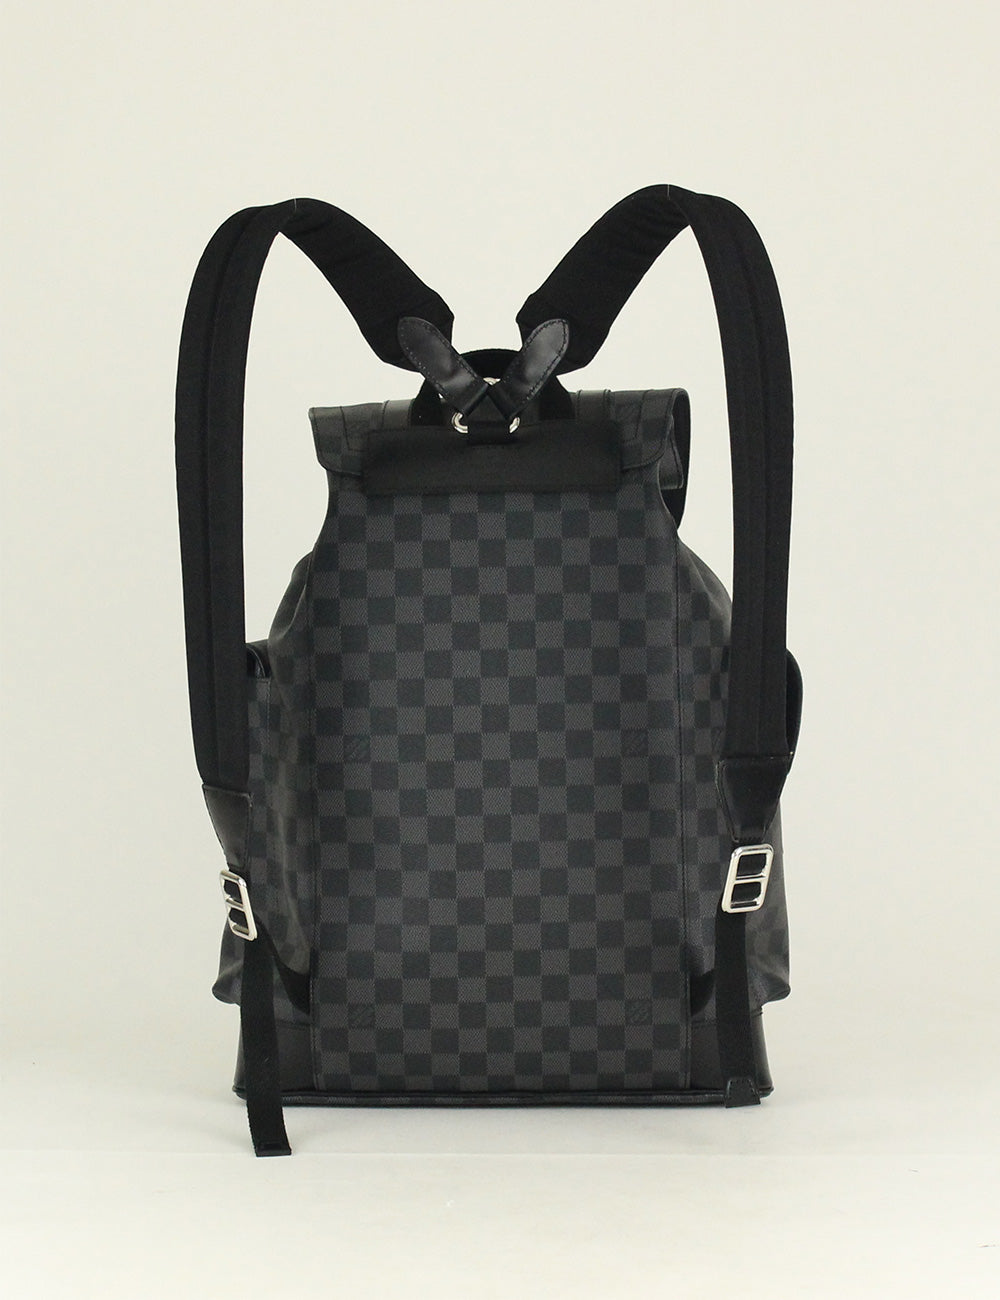 b5934f891f46 Louis Vuitton Christopher PM Backpack Bag – Brand Shop Treasures